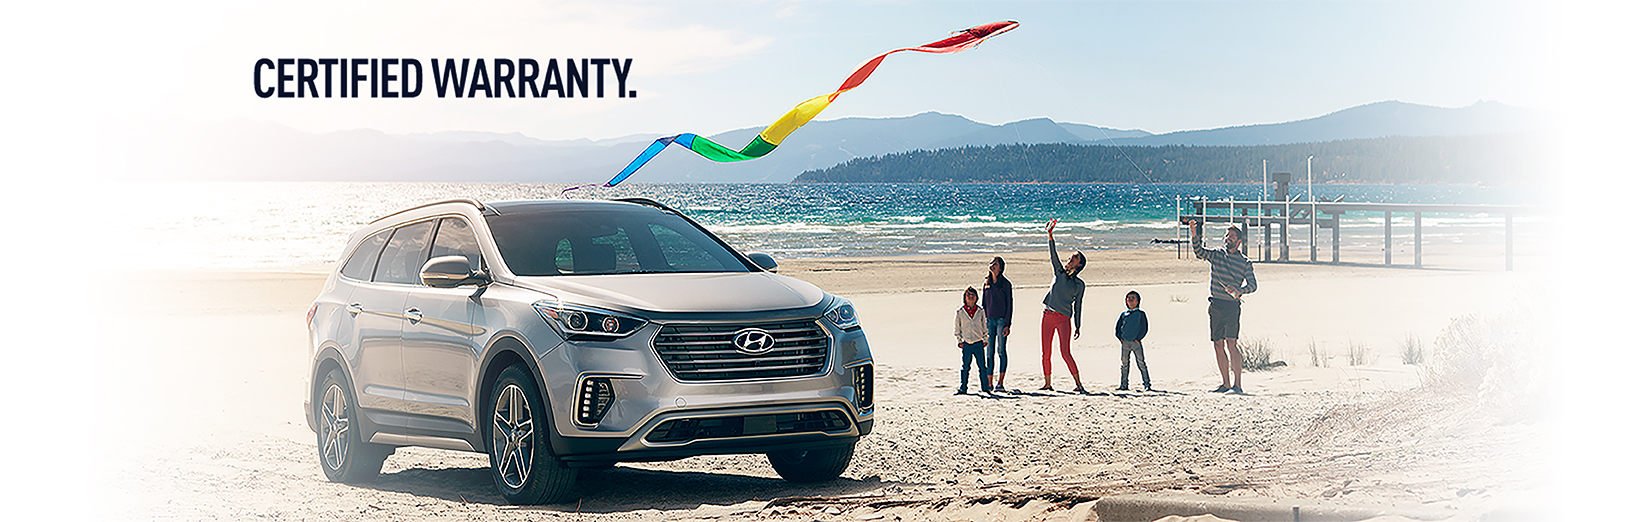 Hyundai Certified Difference And Suvs That Come Equipped From The Factory With A Trailer Hitch 2066 Of Added Value In Every Cpo Vehicle